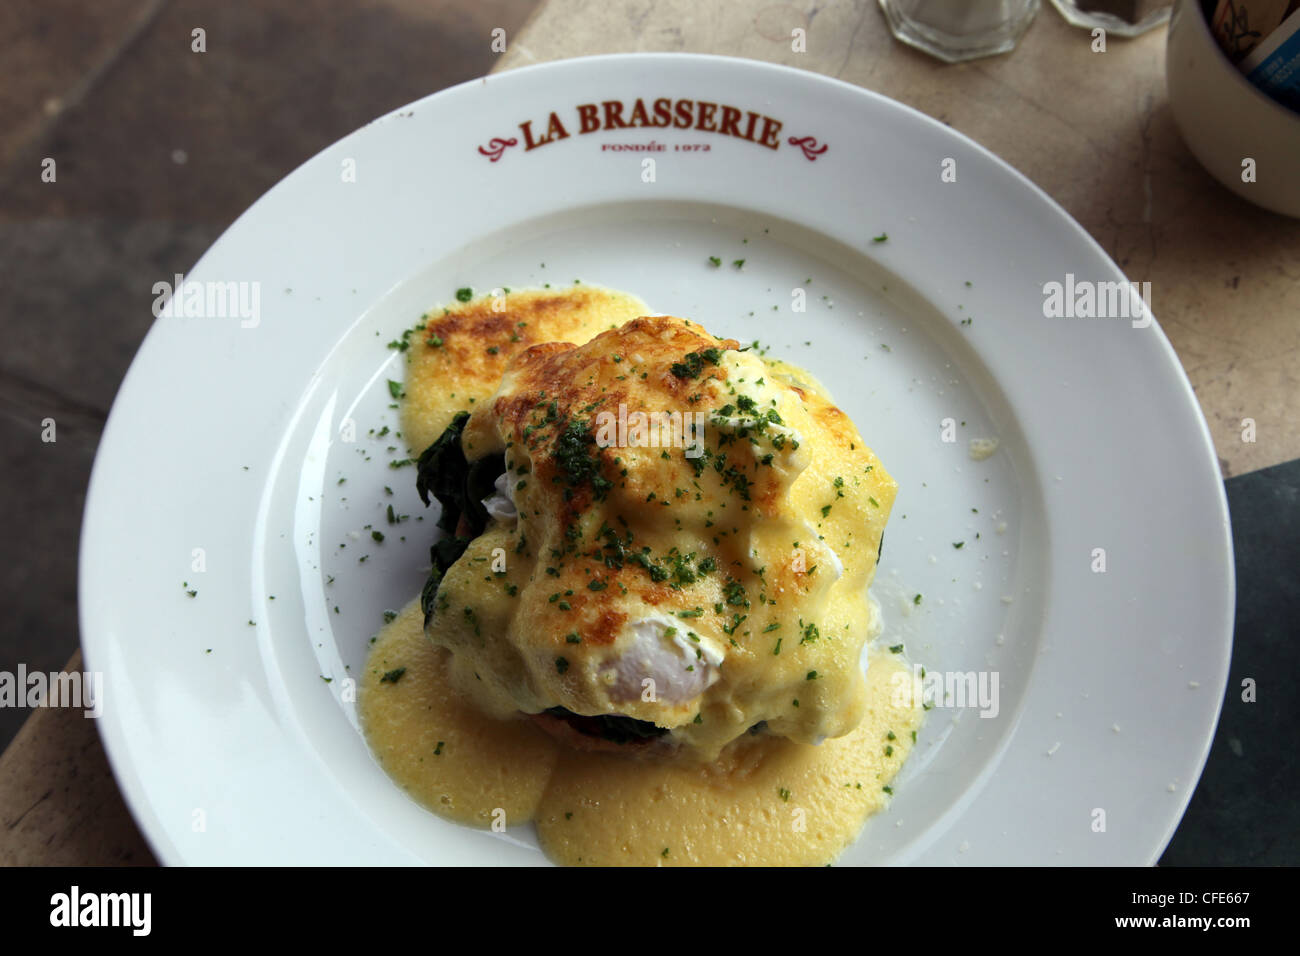 Oeufs Florentine as served at La Brasserie, Brompton Cross, London SW7 - Stock Image